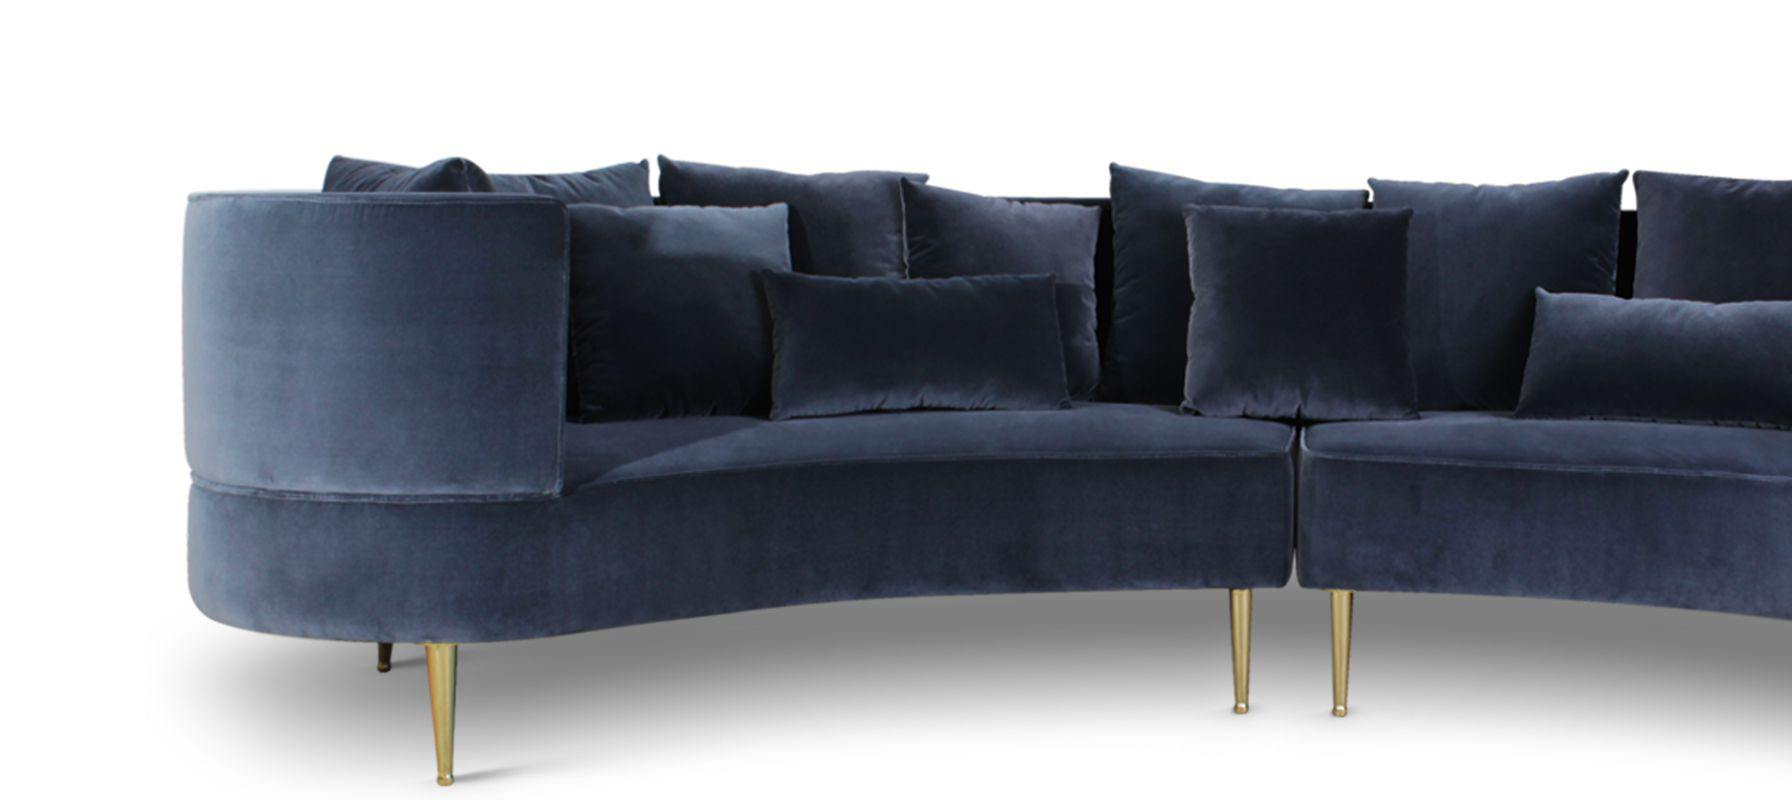 Margret Mid-Century Modern Sofa in blue cotton velvet